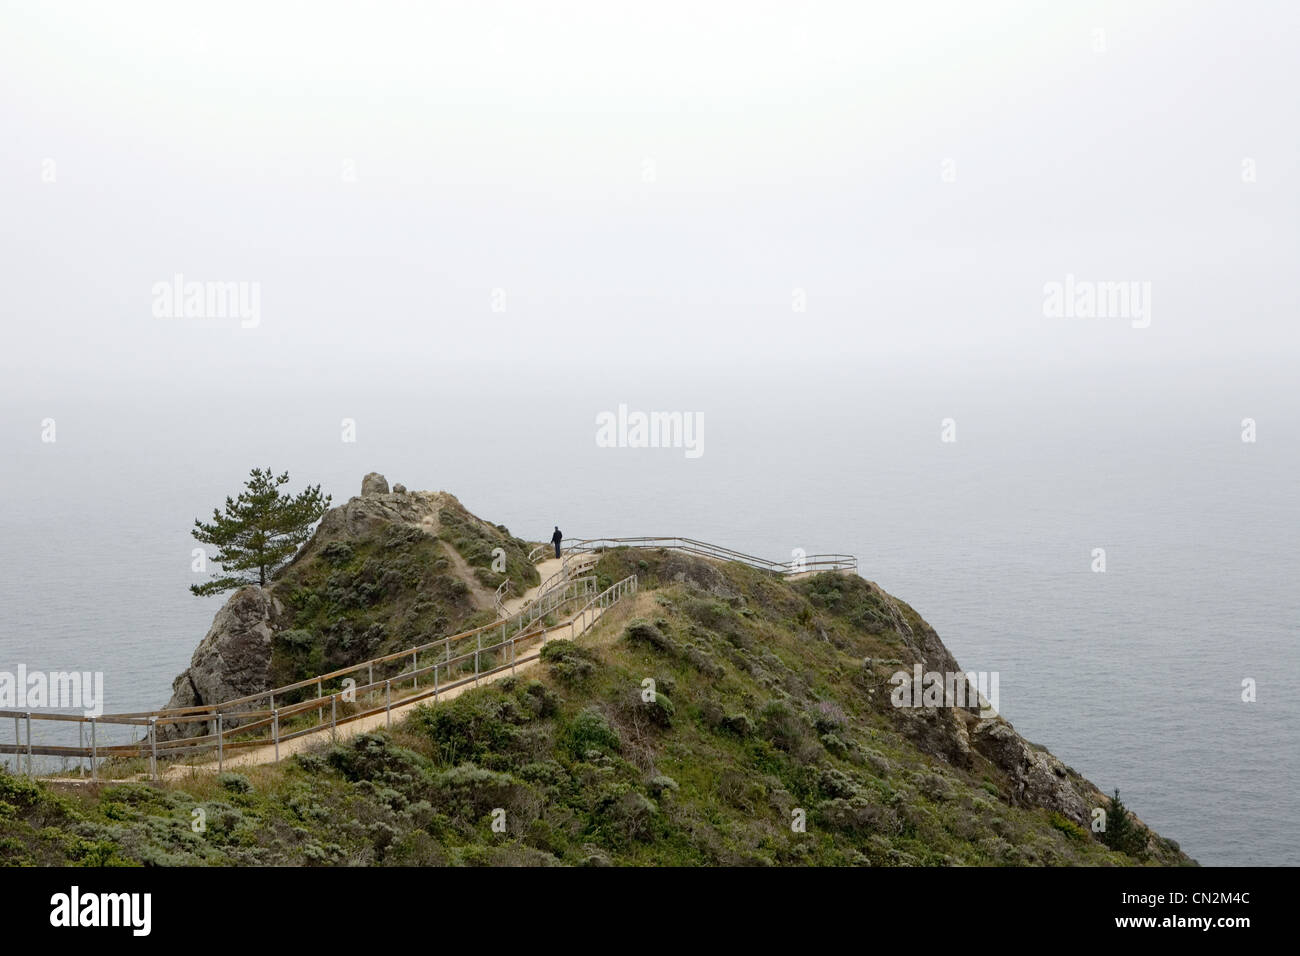 Man looking at view, Muir Beach Overlook, Golden Gate National Park, California, USA - Stock Image